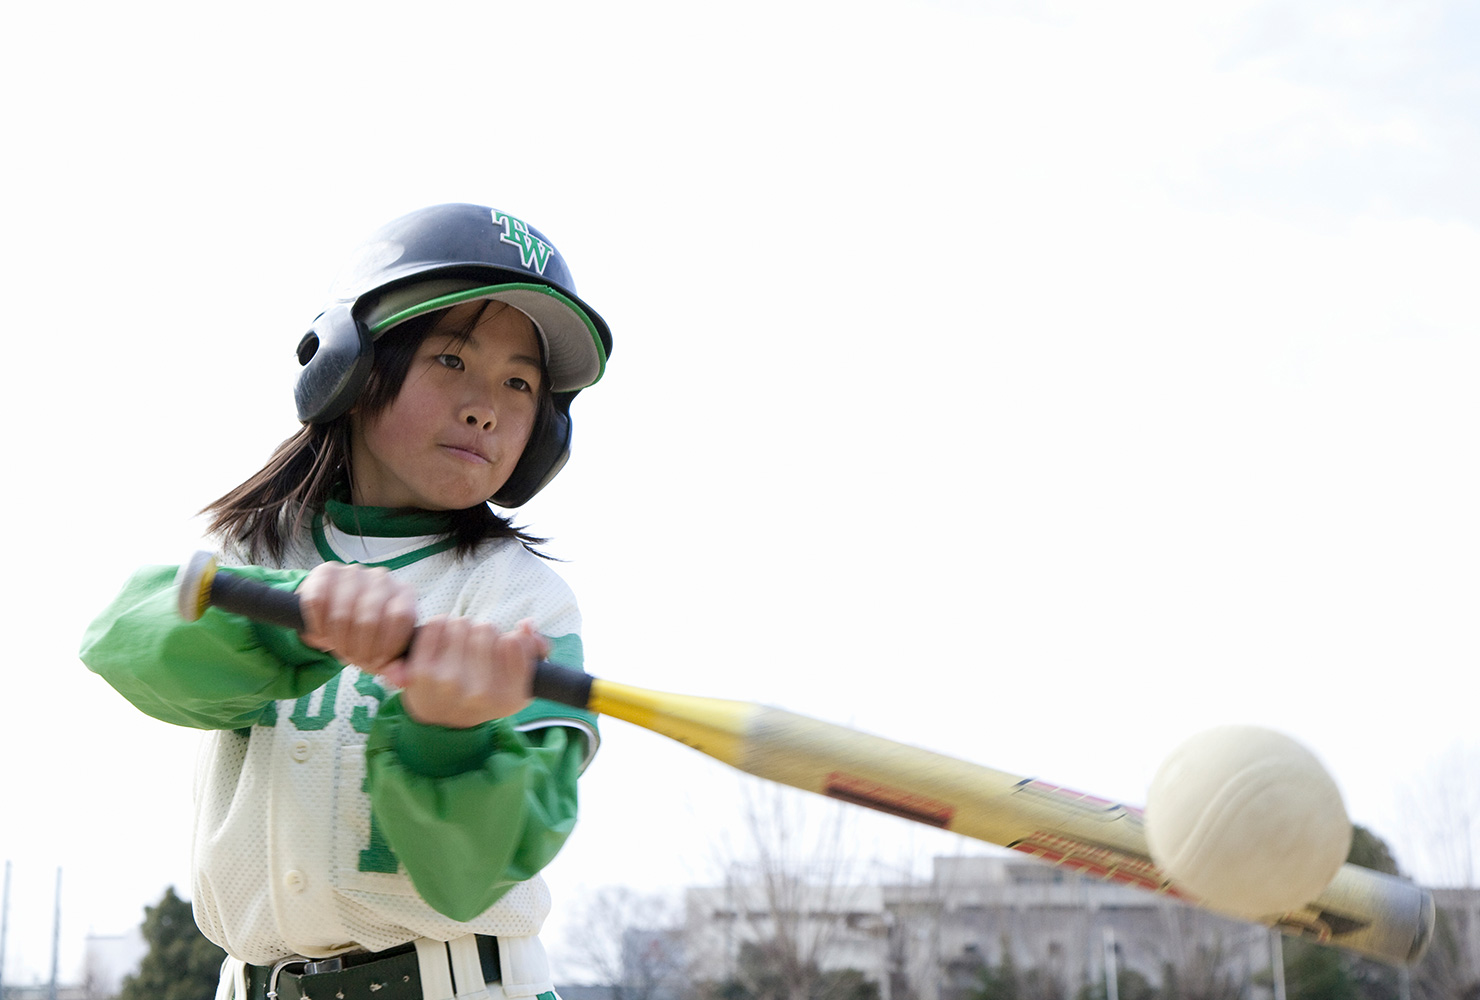 girl hitting a baseball